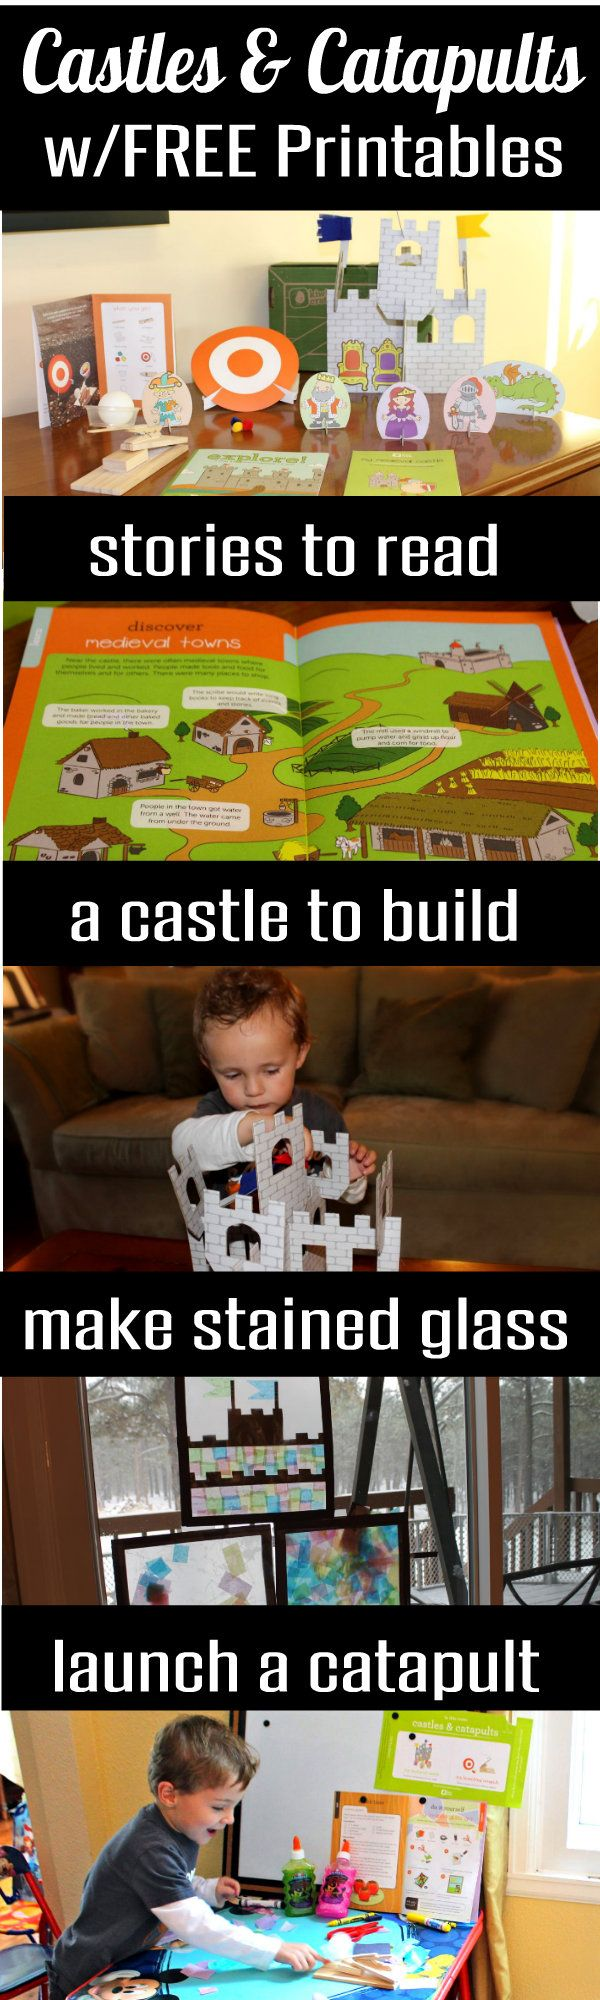 Cute and Fun! Castles and Catapults Preschool Activities with FREE Shields Printables and loads of ideas for Medieval Kids Games and Crafts from HappyandBlessedHome.com